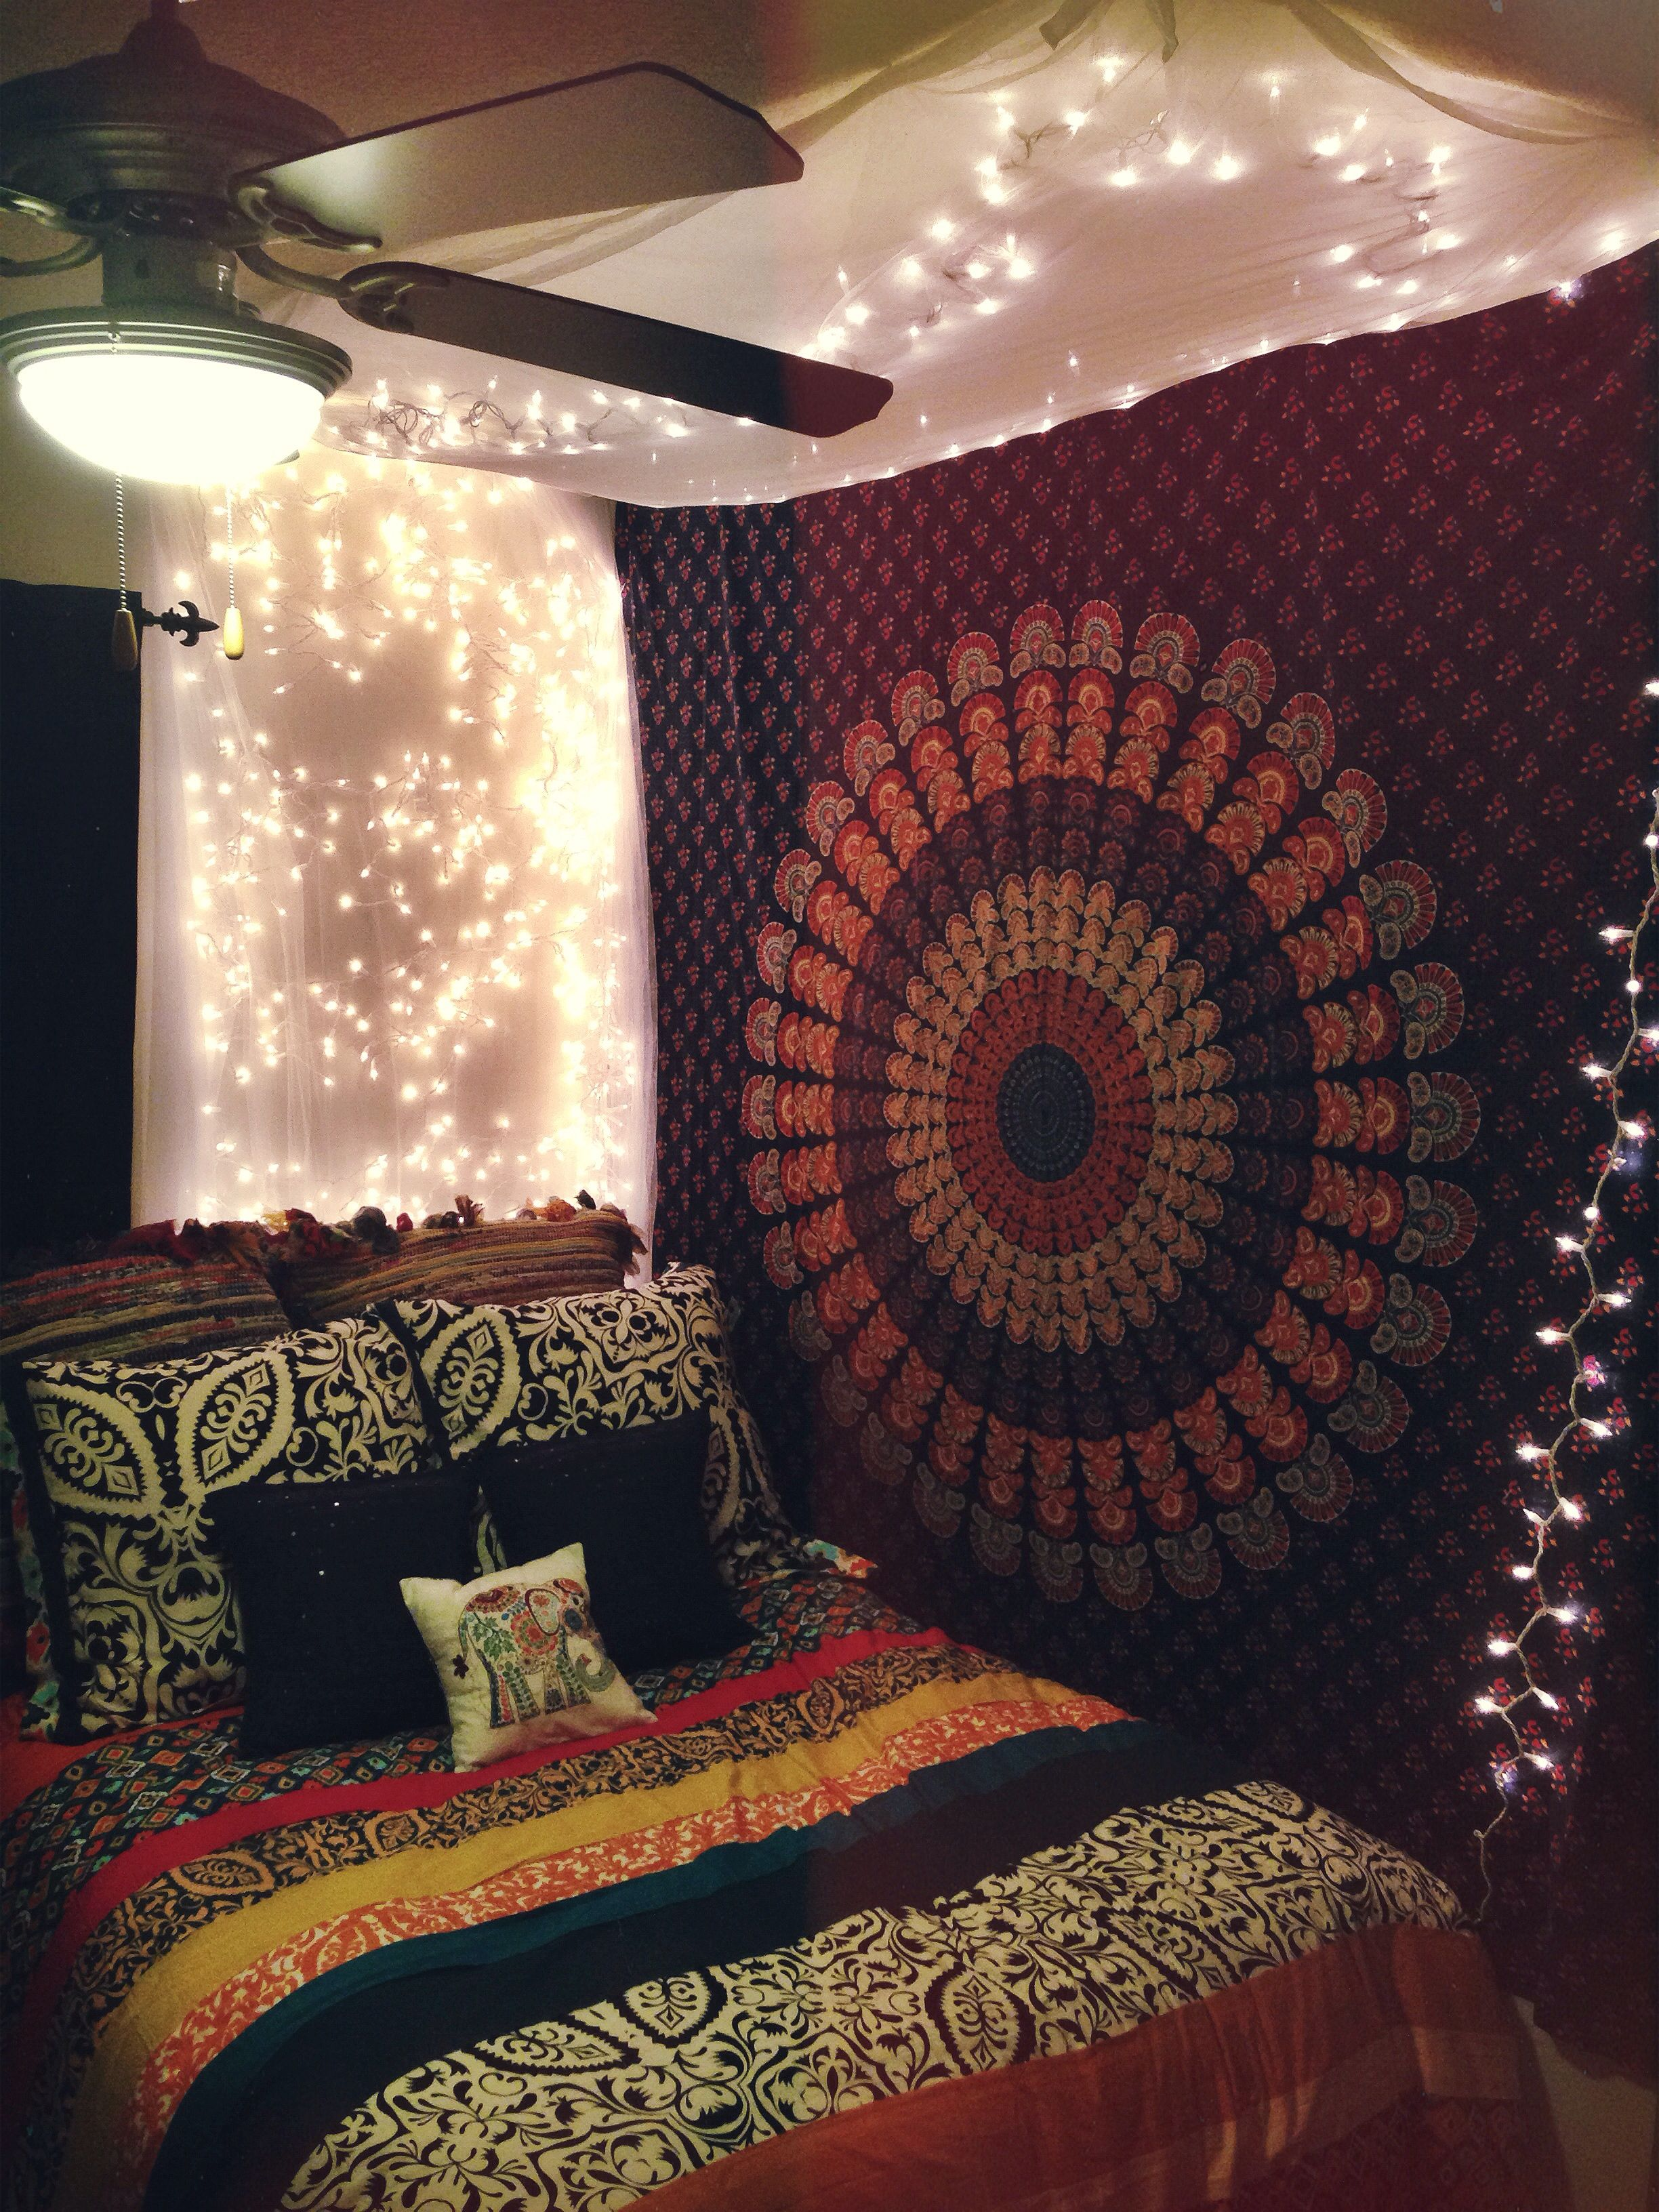 e anthropologie florence bedding bed canopy with christmas lights and boho tapestry all in my college apartment bedroom